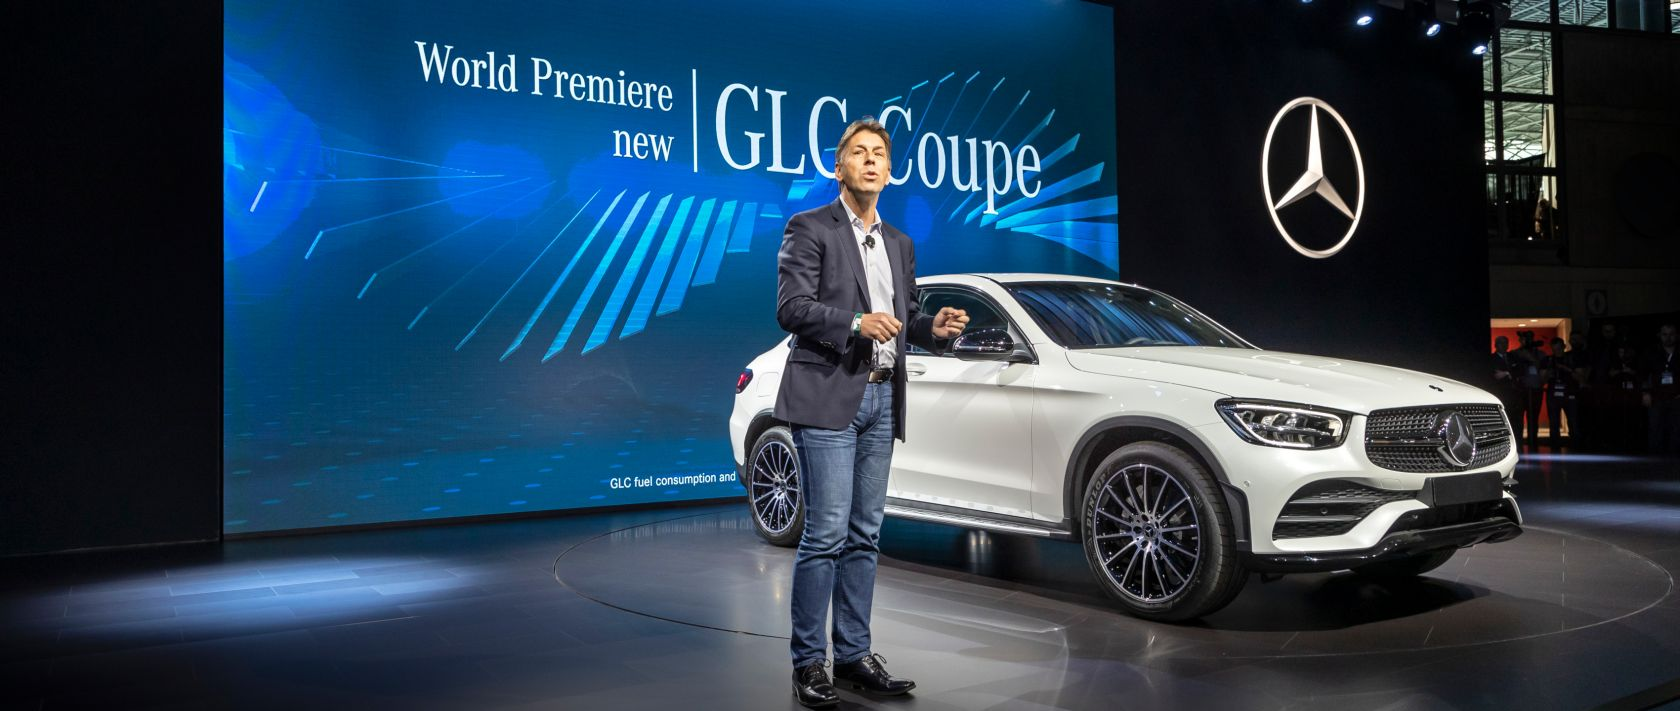 Dietmar Exler, President & CEO of Mercedes-Benz USA, presenting the new Mercedes-Benz GLC Coupé (C 253) in designo diamond white bright at the 2019 New York International Auto Show.